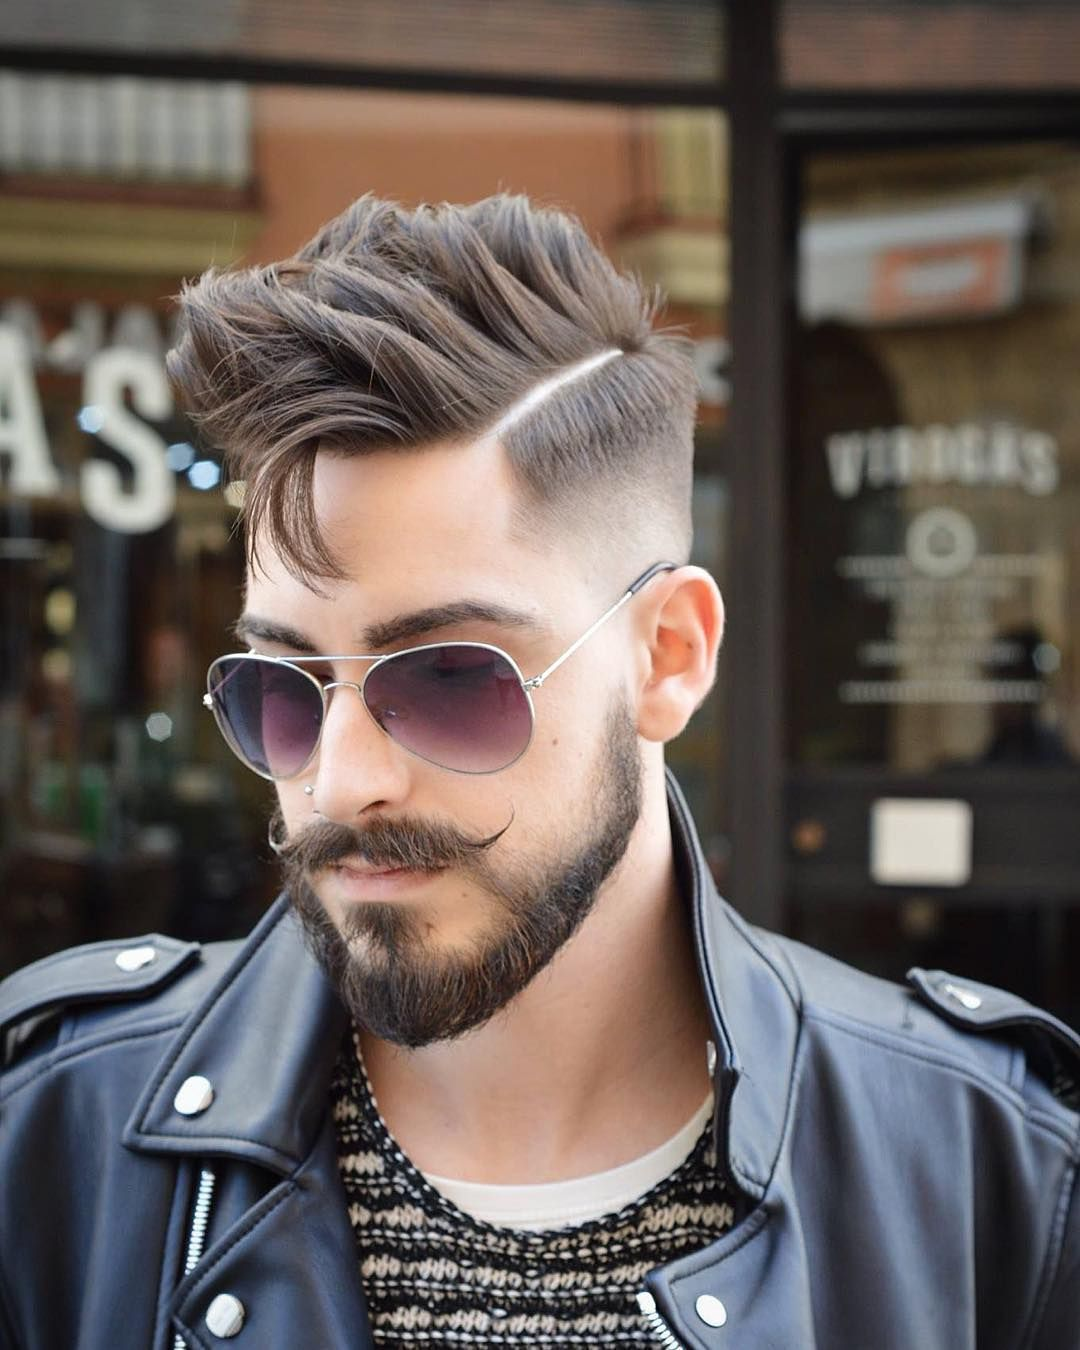 Pin by groomedfashion on menus hair care and styles pinterest